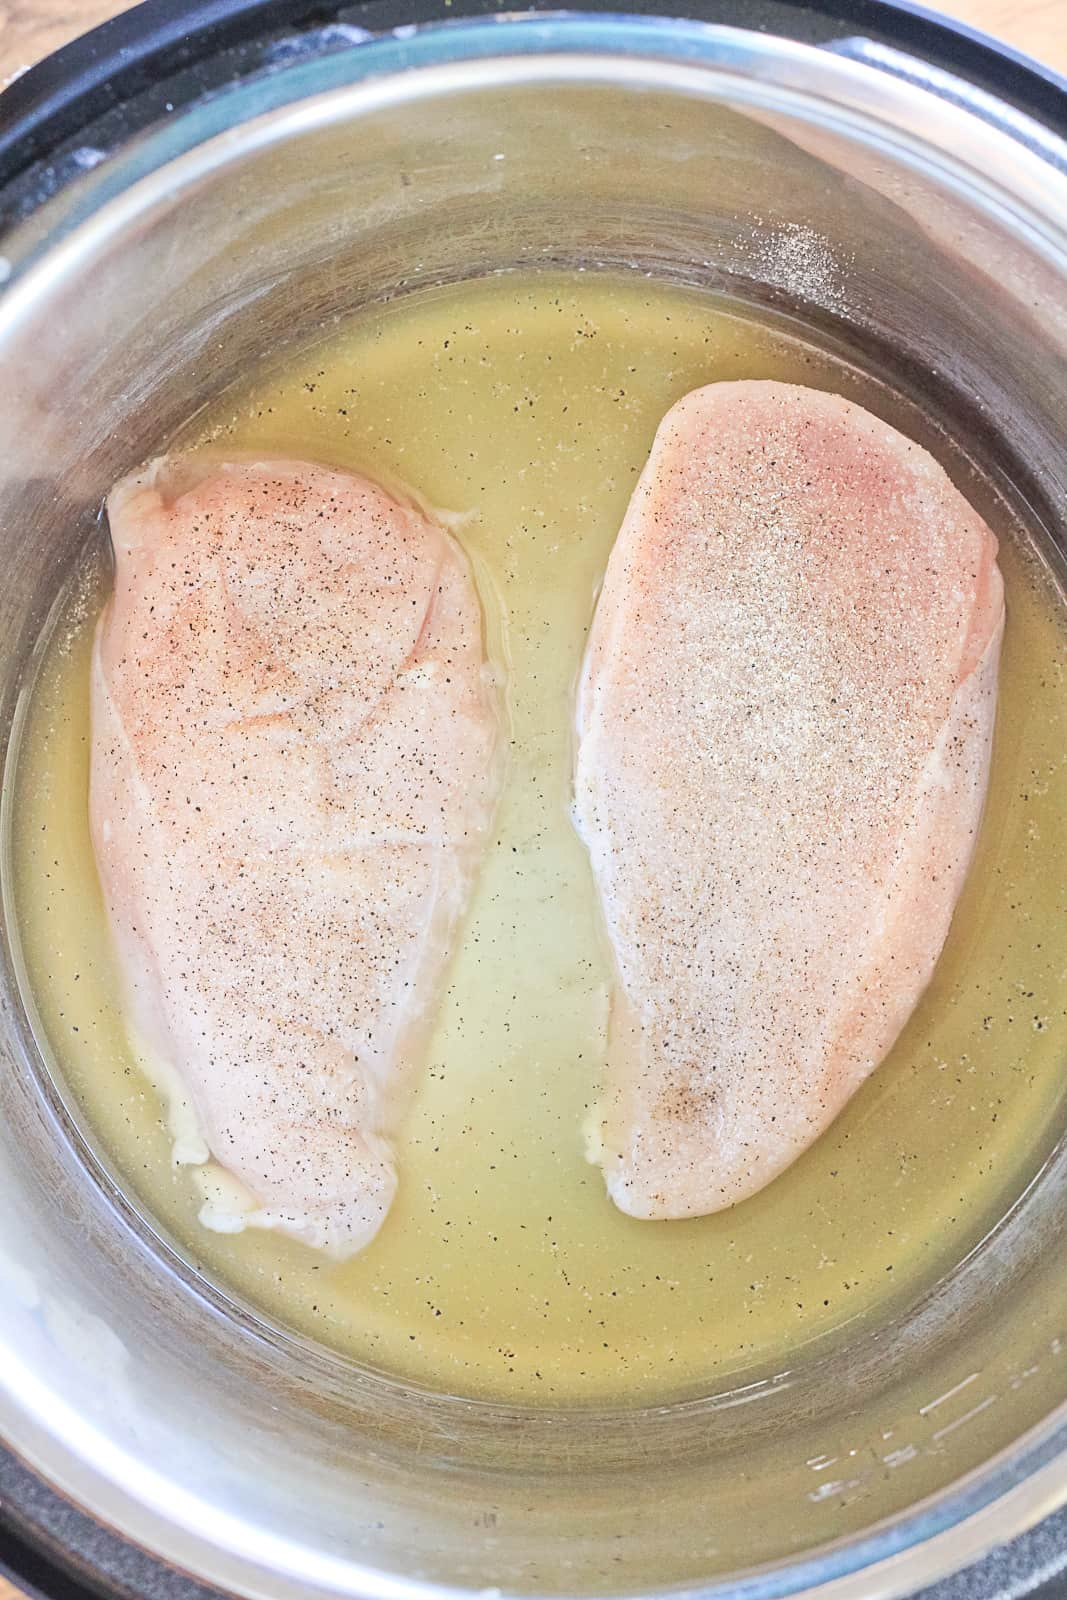 Two raw chicken breasts in broth/stock inside the instant pot.